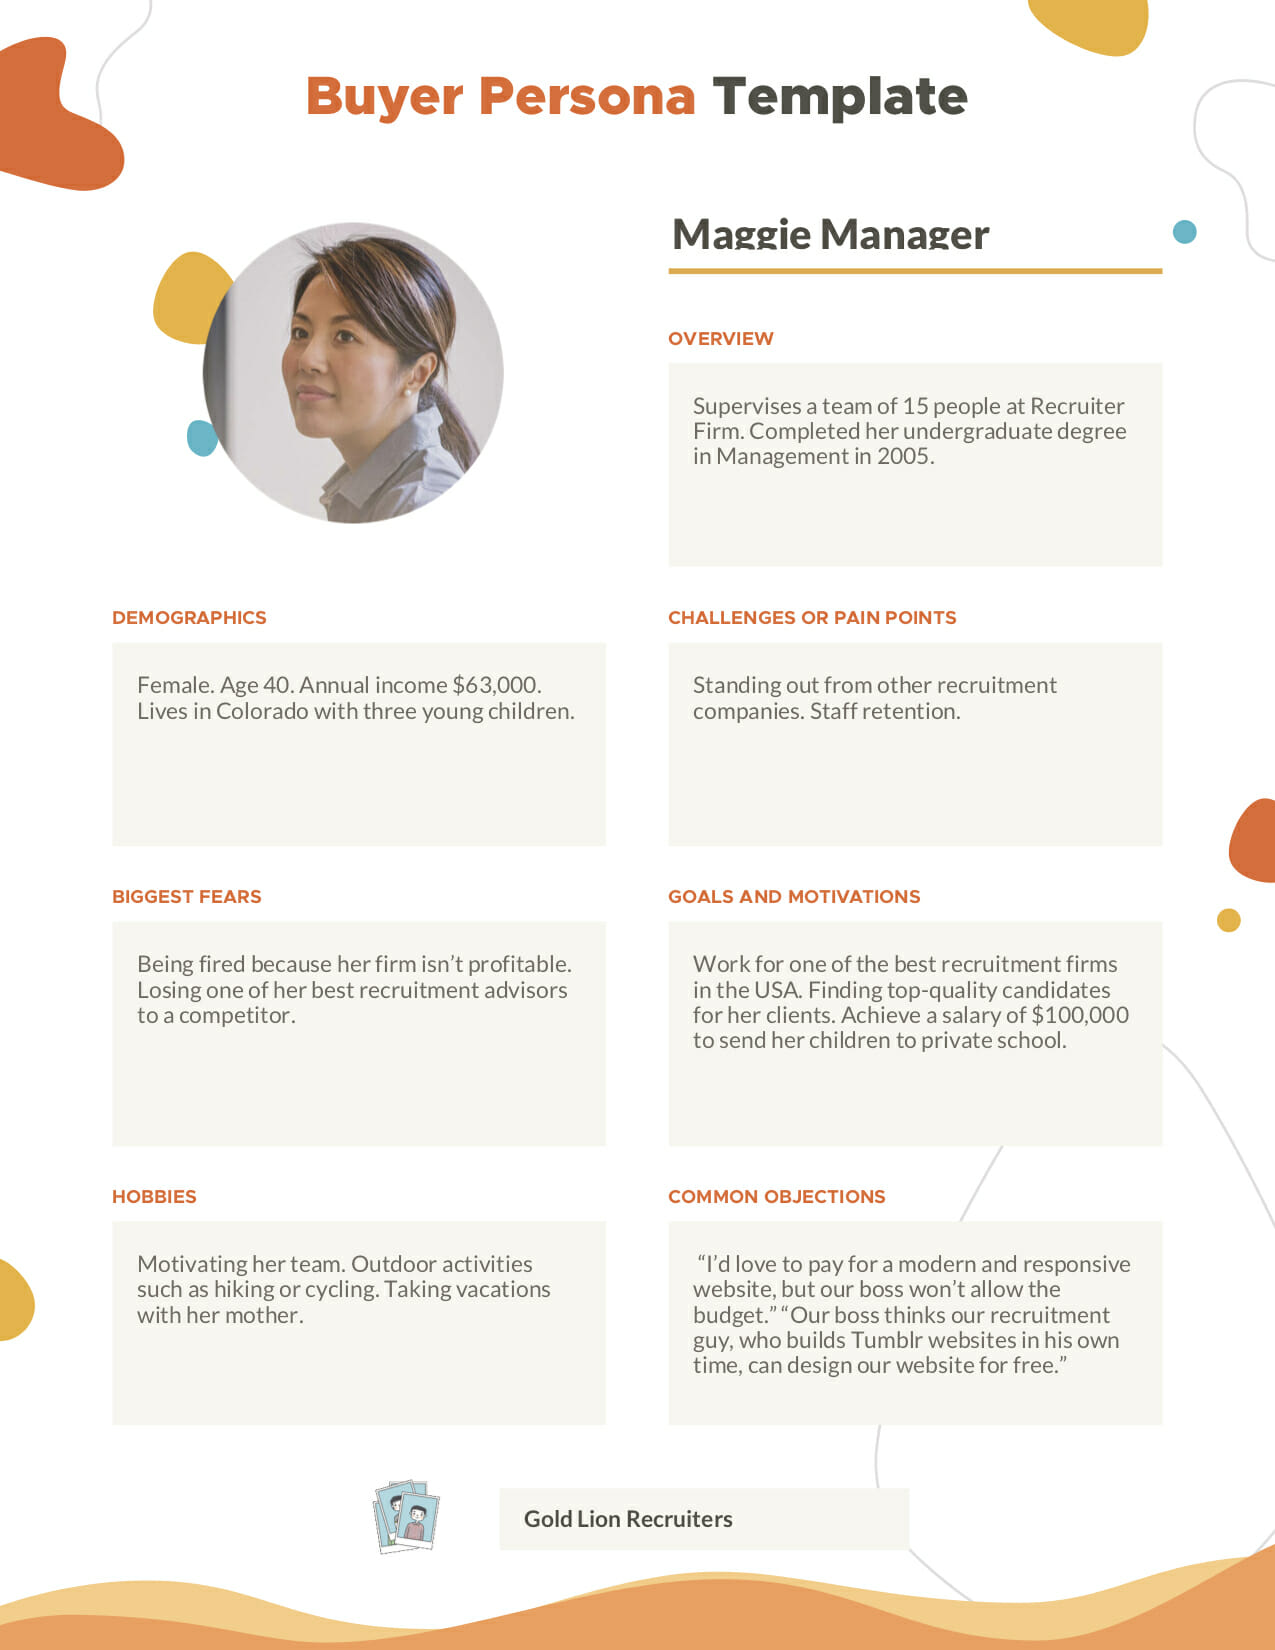 Buyer Persona - Maggie Manager